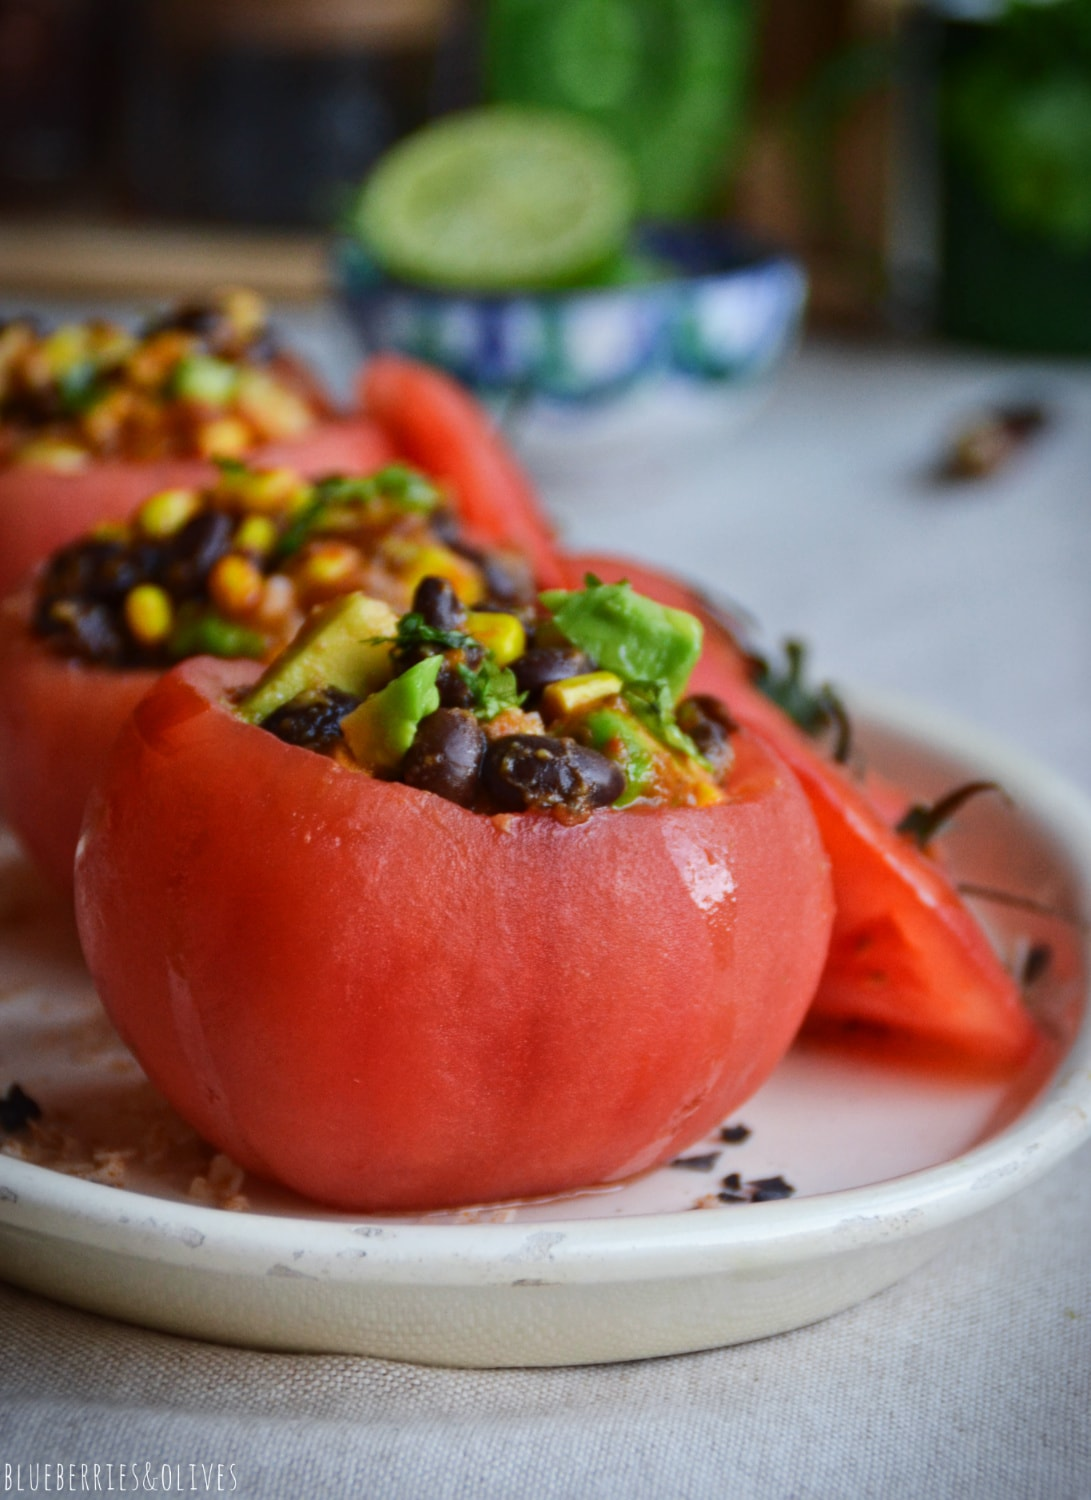 STUFFED TOMATOES IN WHITE PORCELAIN DISH, CILANTRO LEAVES,INGREDIENTS IN BACKGROUND